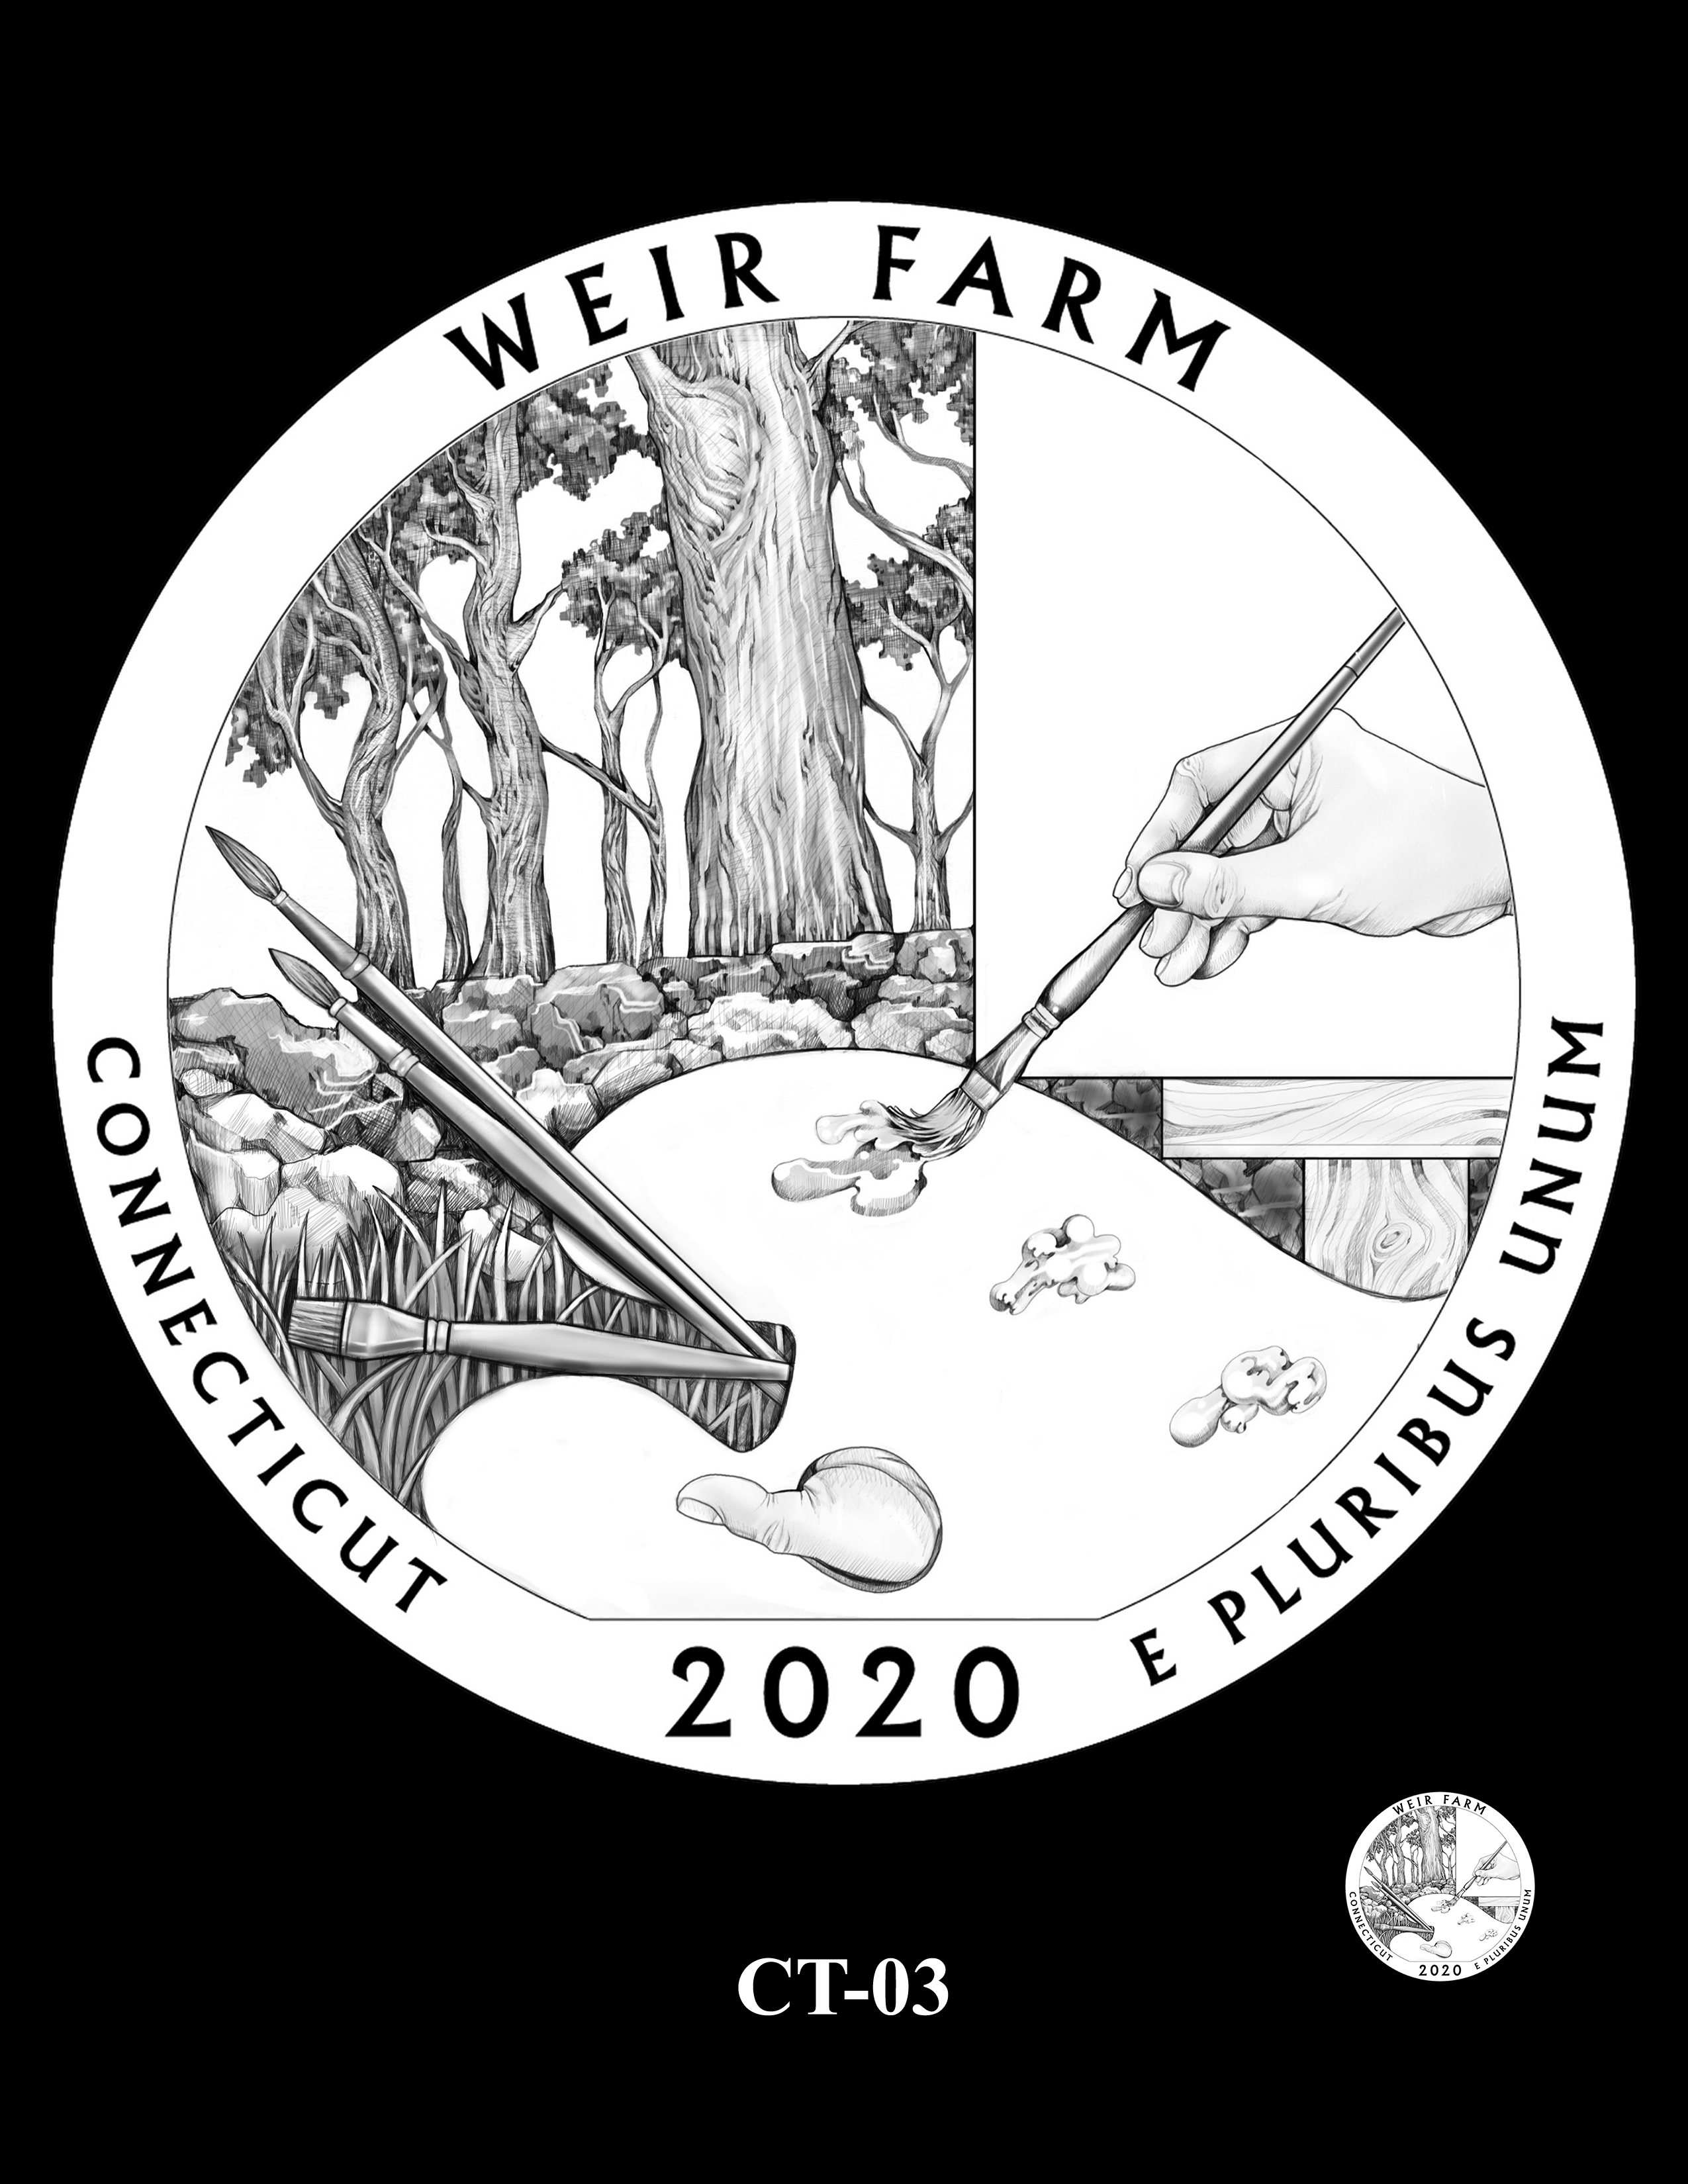 CT-03 -- 2020 America the Beautiful Quarters® Program